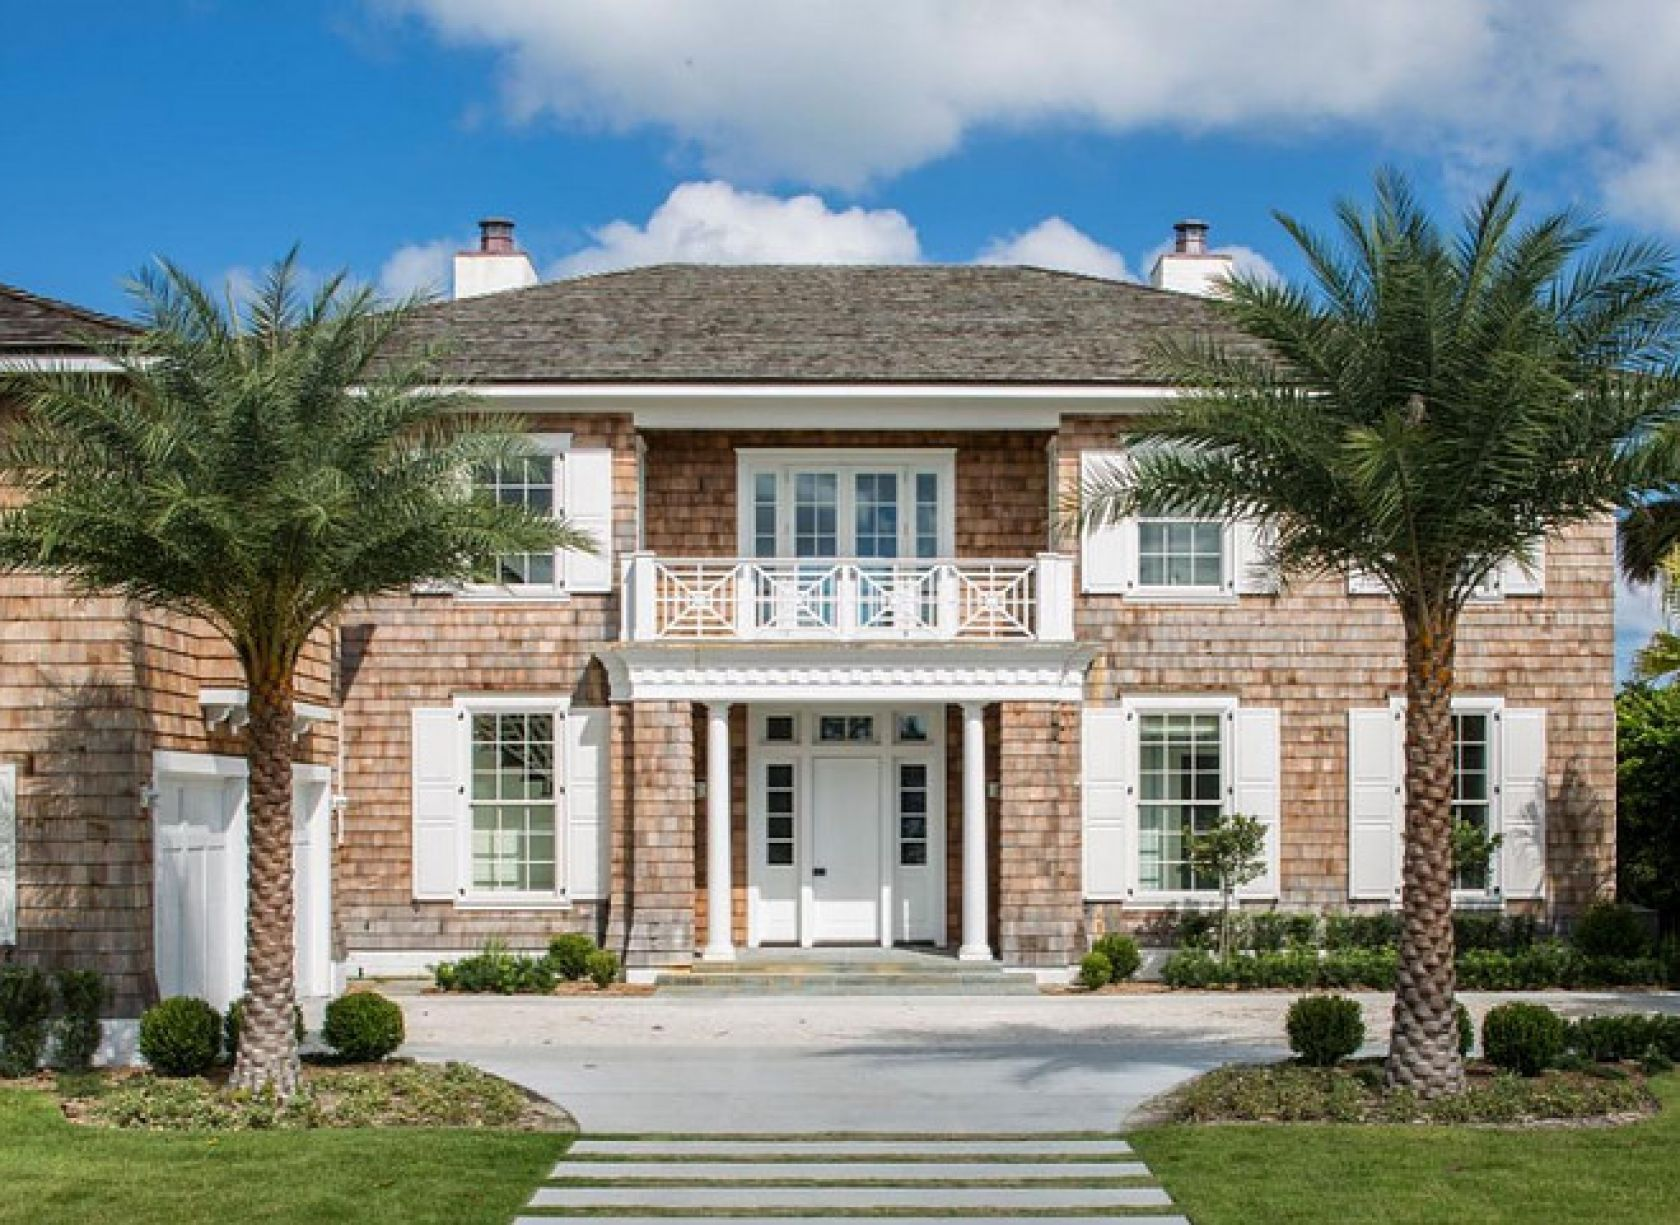 Beautiful Blue And White Beach House Tour. Take A Look Inside This Amazing  Blue And White Coastal Designed Beach House.